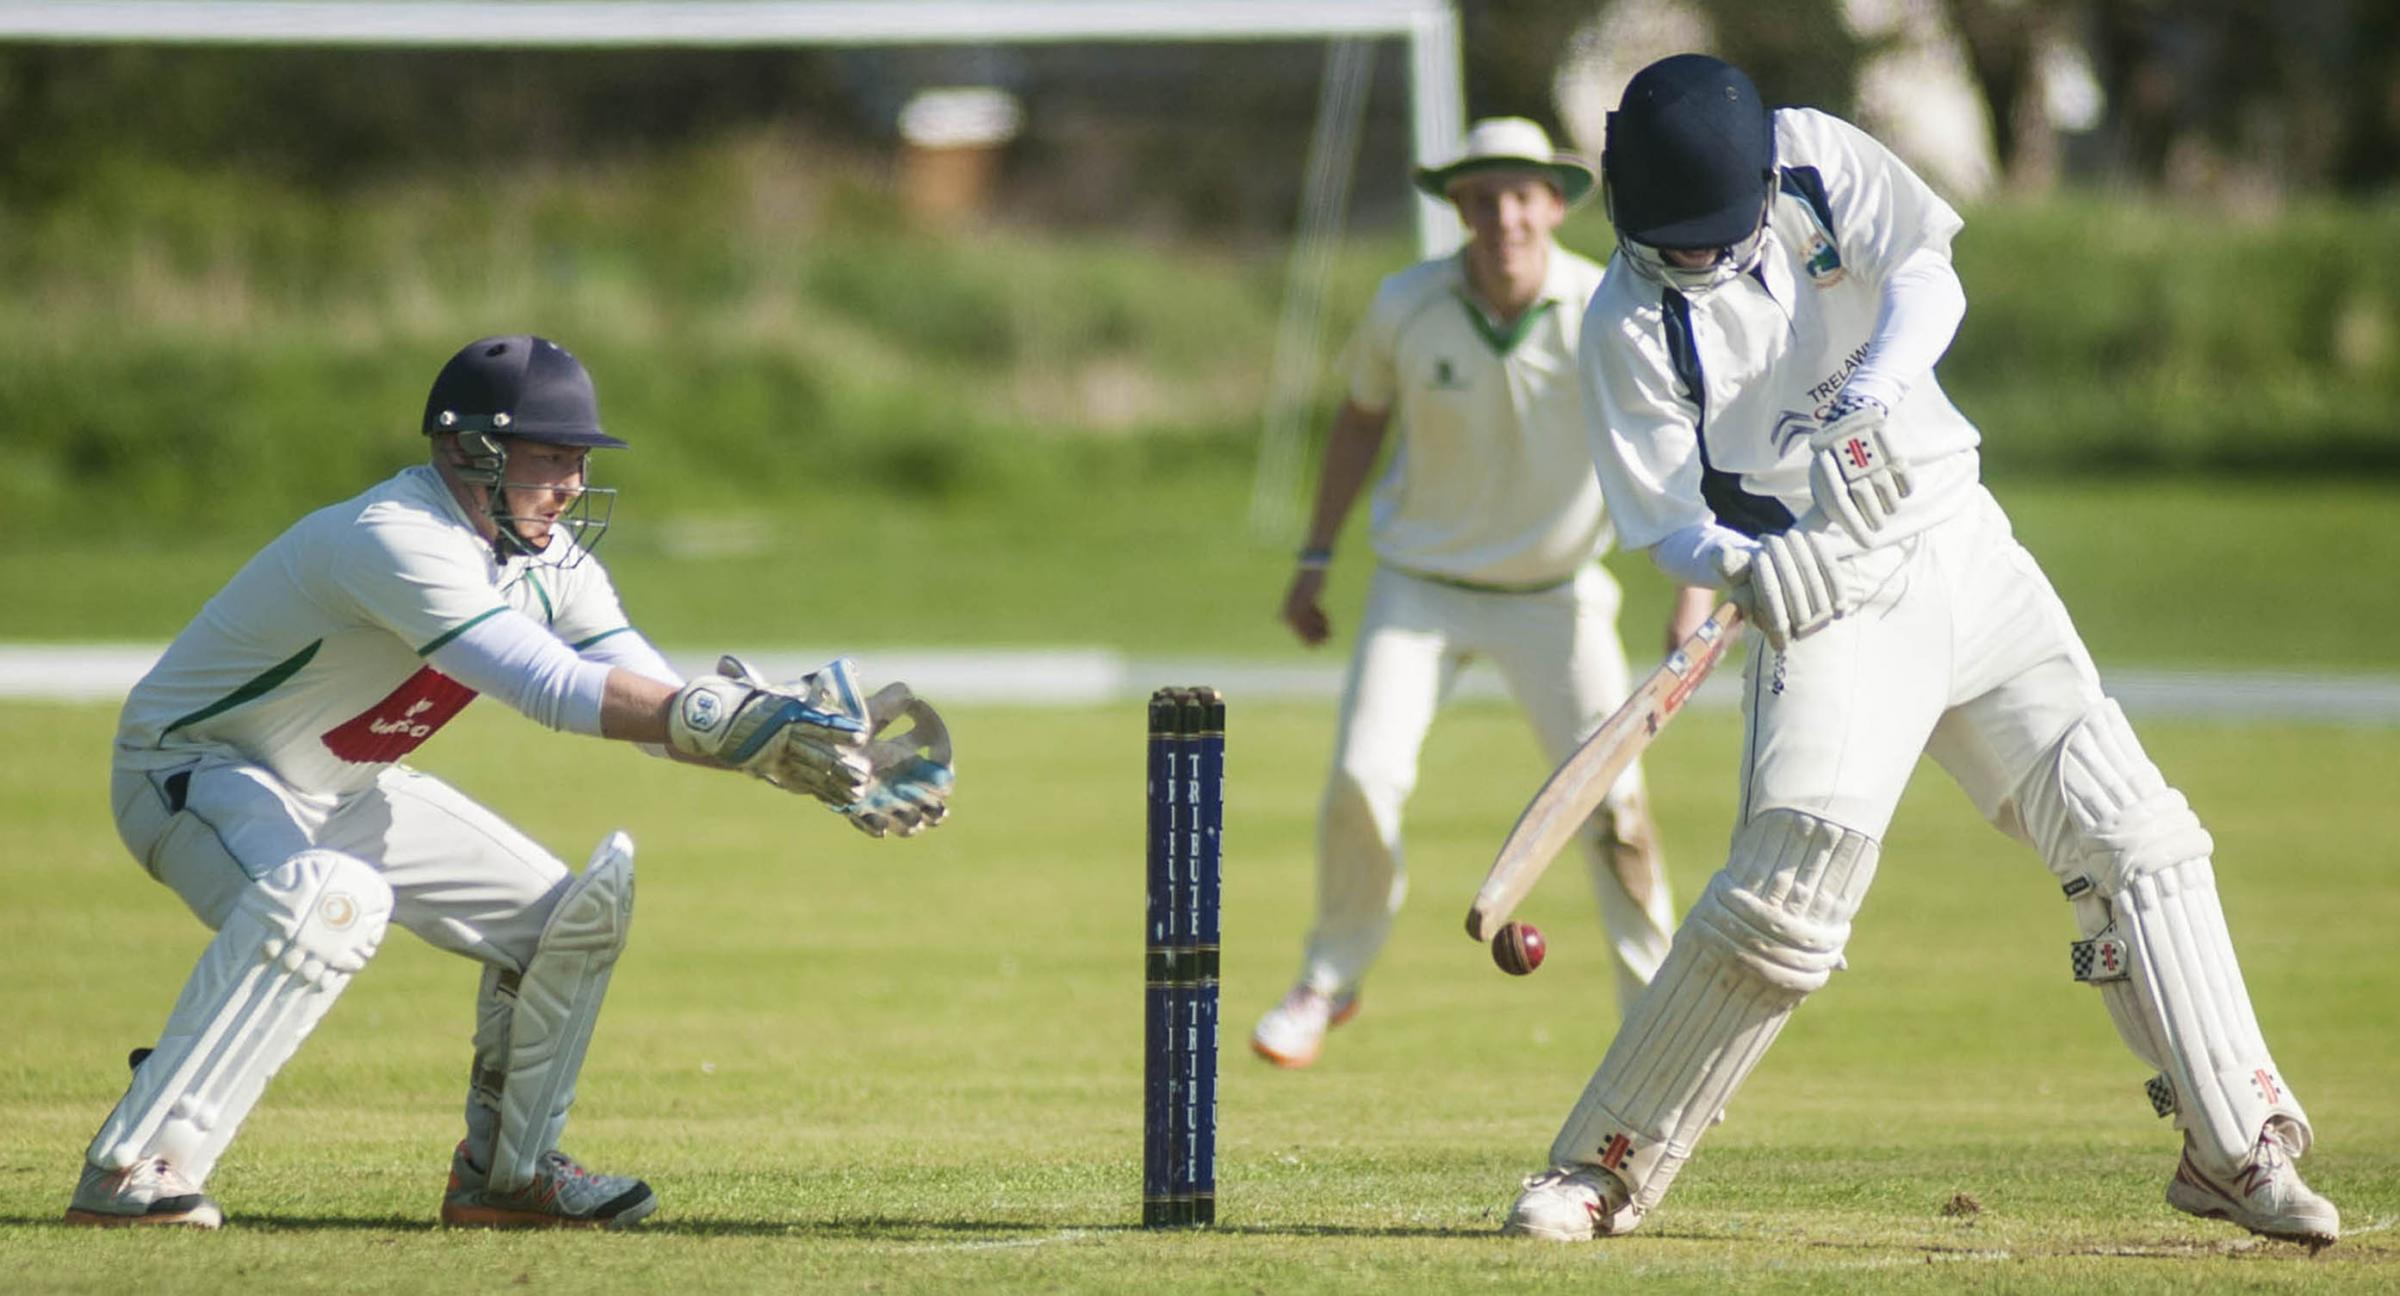 St Gluvias beat Mount Hawke & Porthtowan by 12 runs on Saturday to record their third win of the season